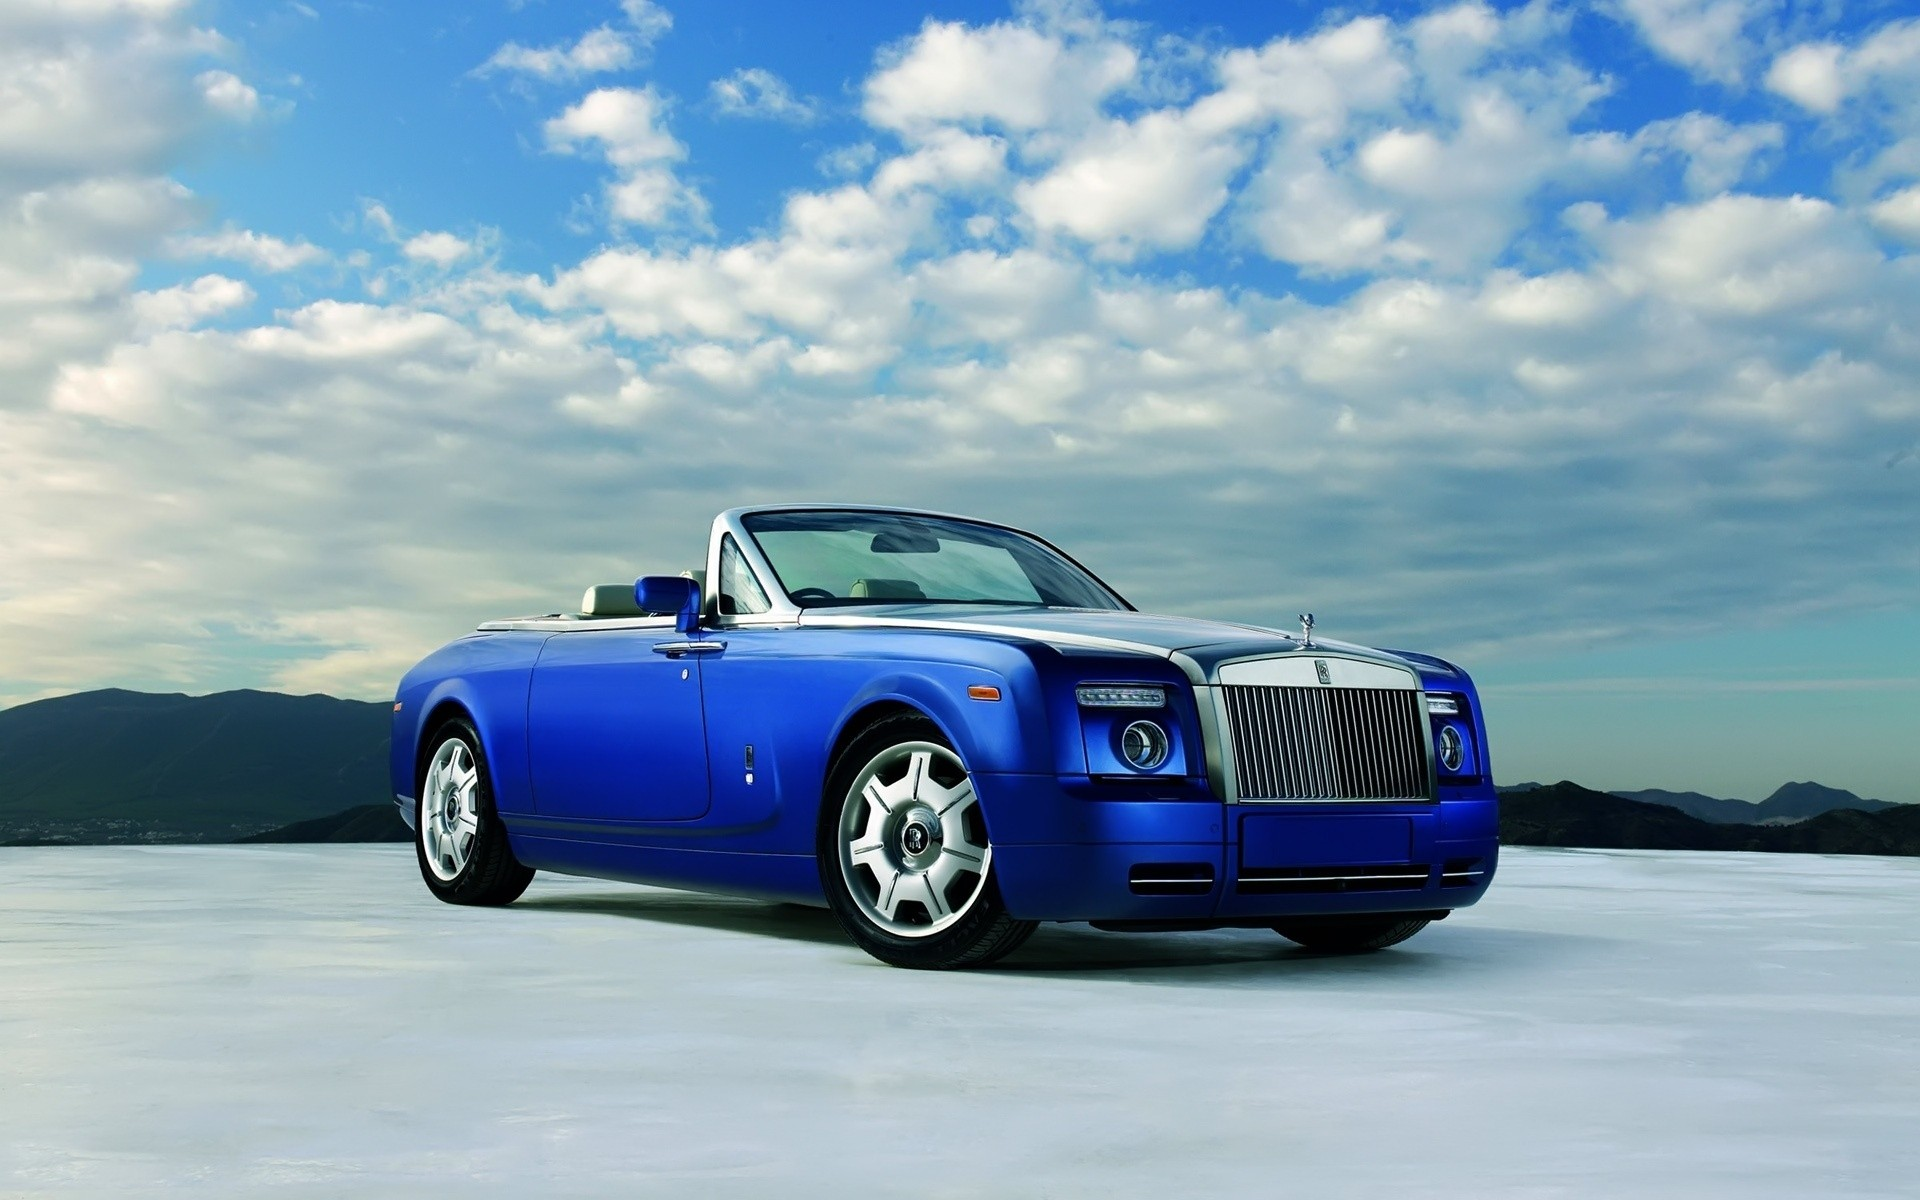 Rolls Royce Phantom Drophead Coupe синий